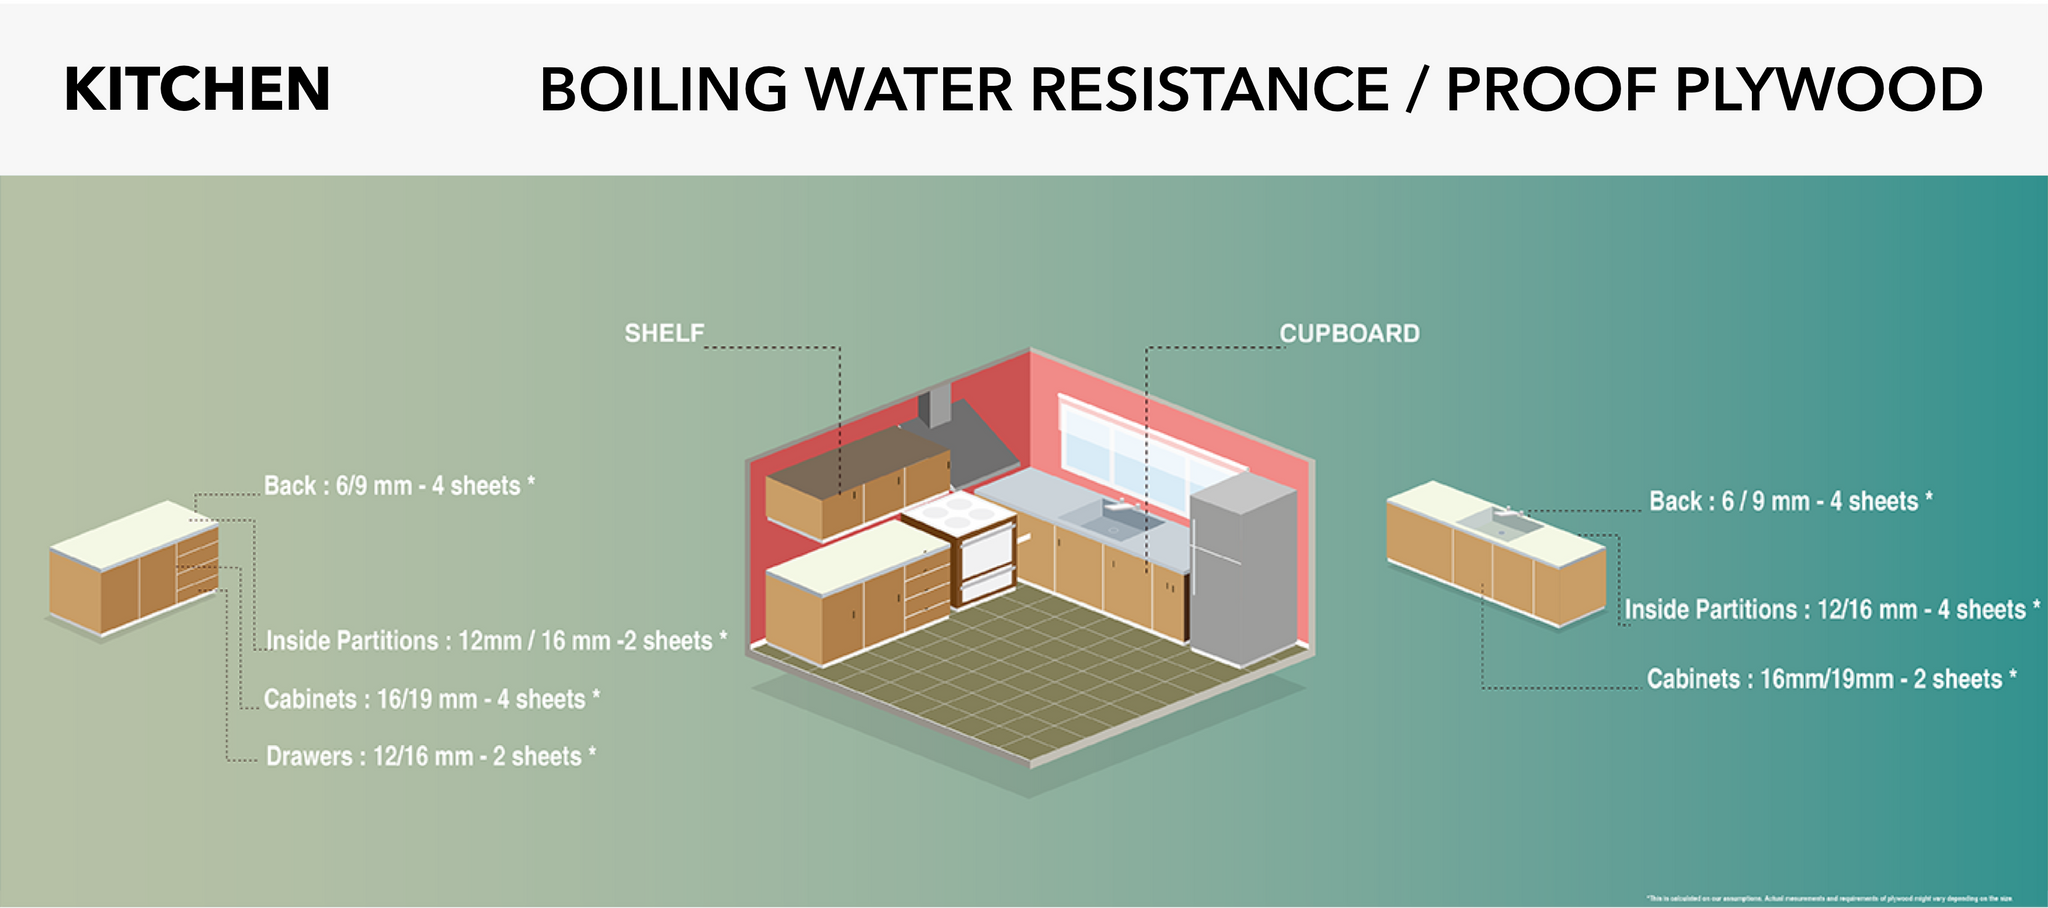 PLYWOOD FOR KITCHEN | BWR GRADE PLYWOOD | BOILING WATER RESISTANCE PLYWOOD | PLYWOOD